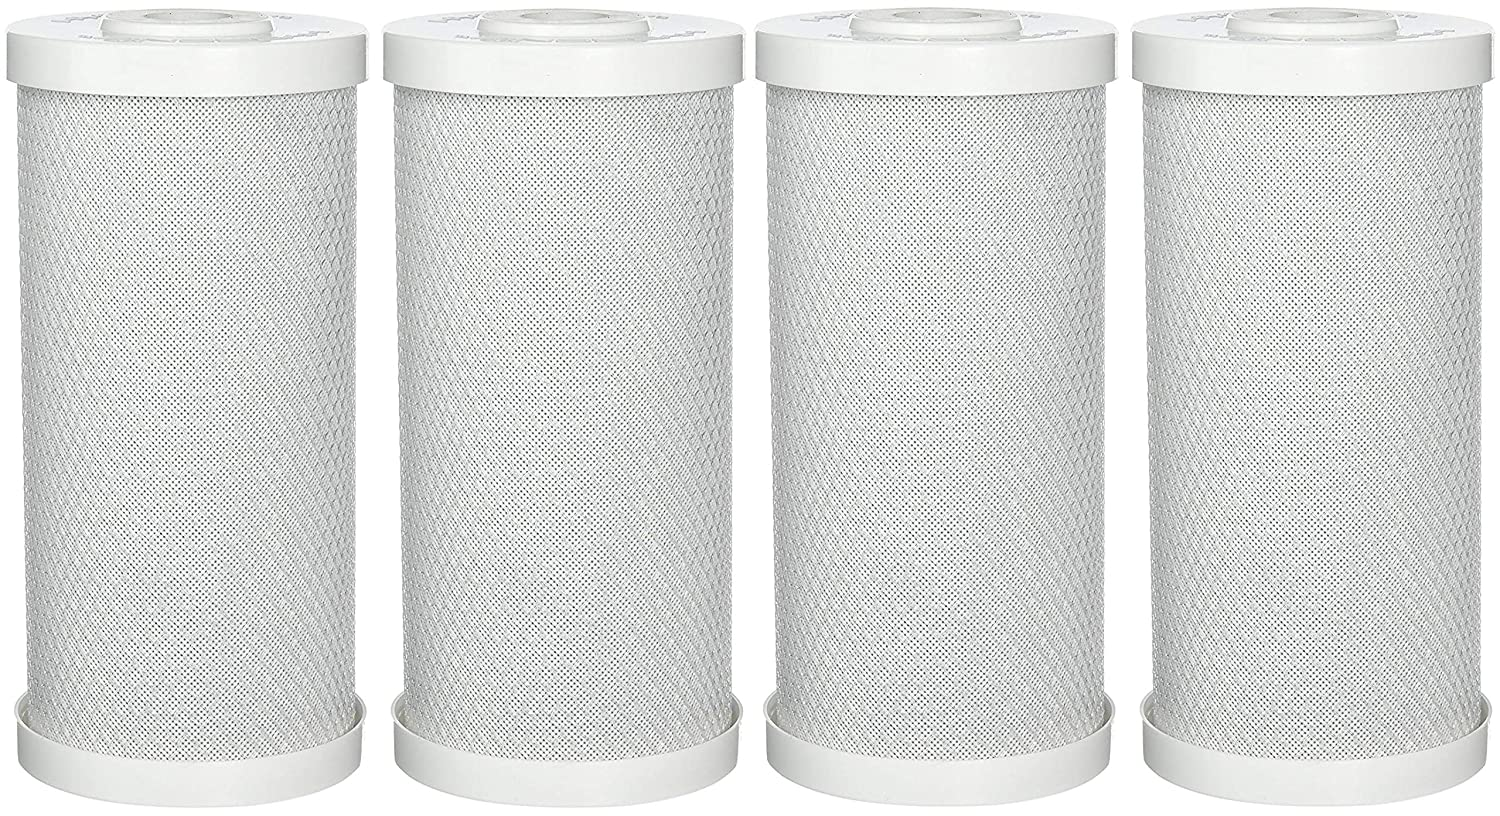 Hydronix CB-45-1010 Whole House or Commercial NSF Coconut Activated Carbon Block Water Filter 4.5 x 10-10 Micron 4.5 x 10-10 Micron